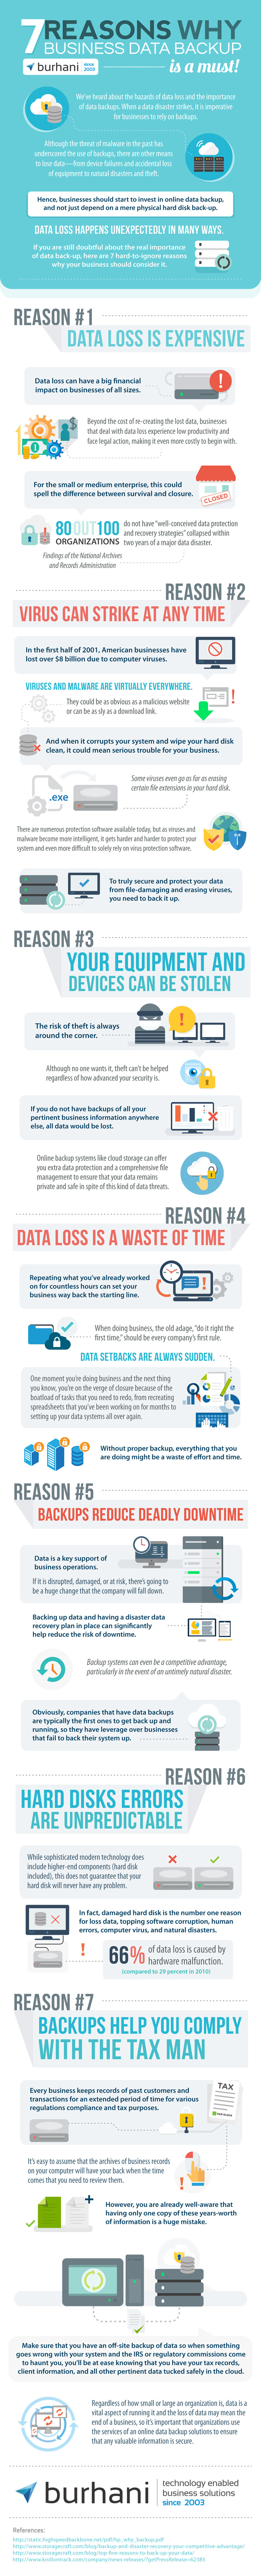 7 Reasons Why Business Data Backup is a Must (Infographic) - Image 1